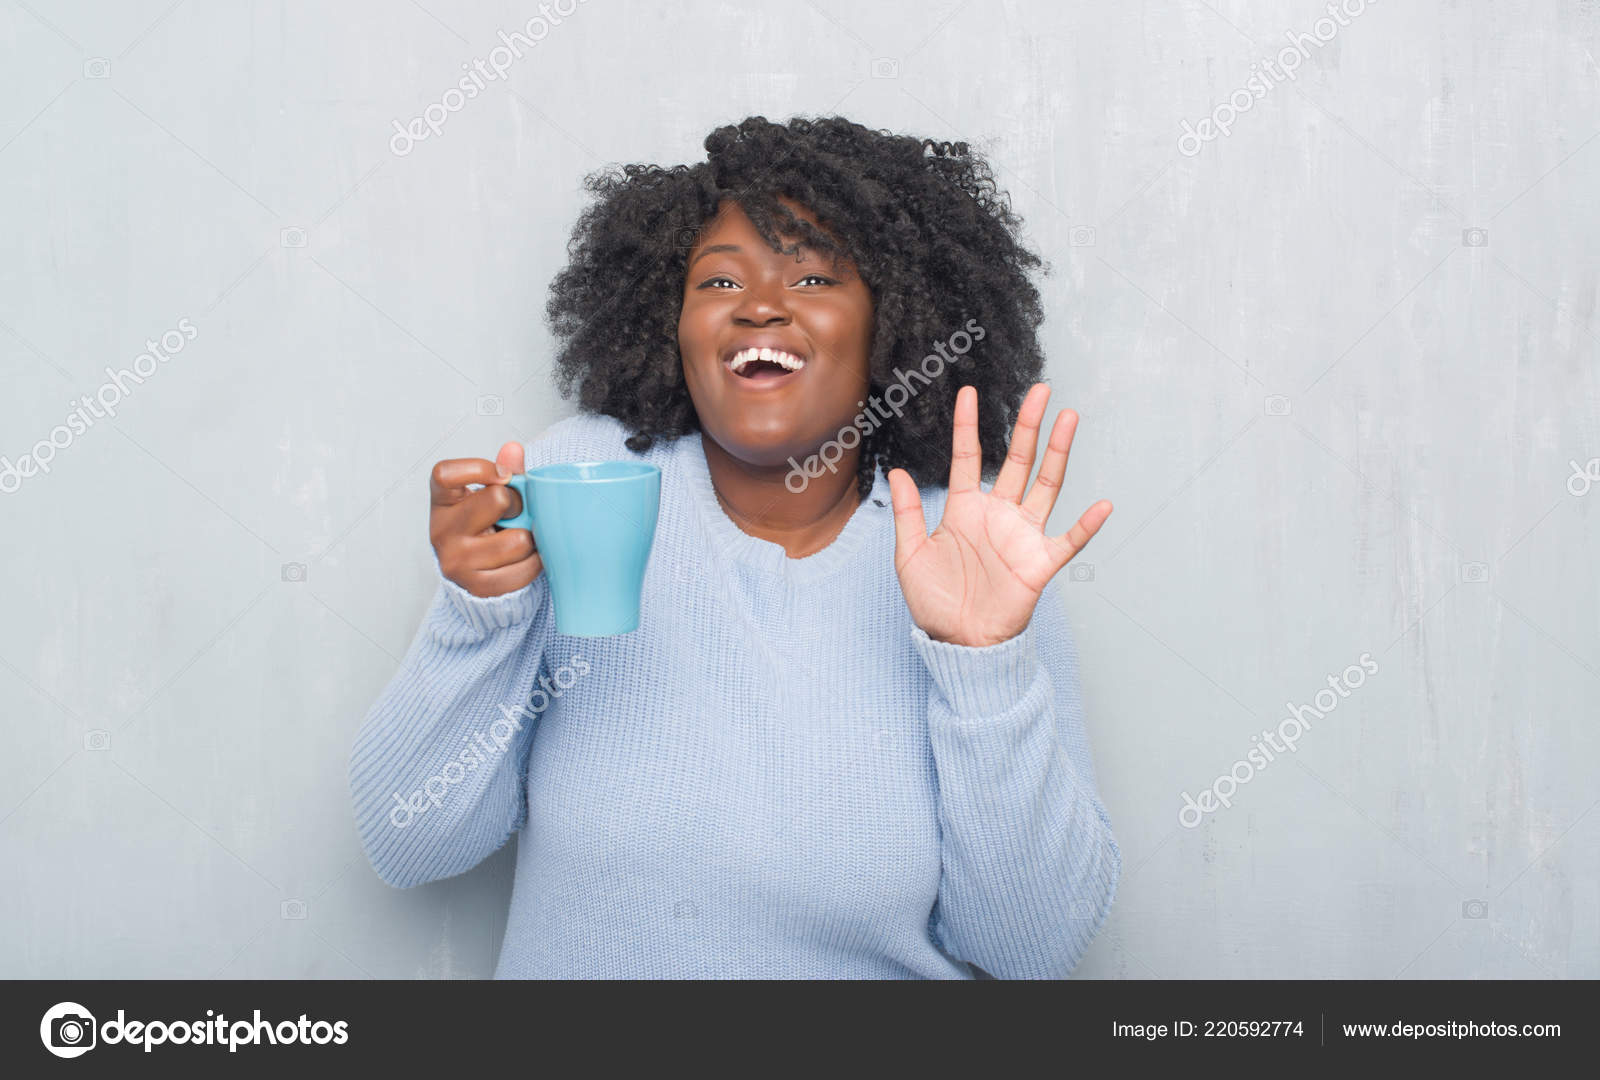 f29d14a57f2 Young african american woman over grey grunge wall drinking a cup of coffee  very happy and excited, winner expression celebrating victory screaming  with big ...